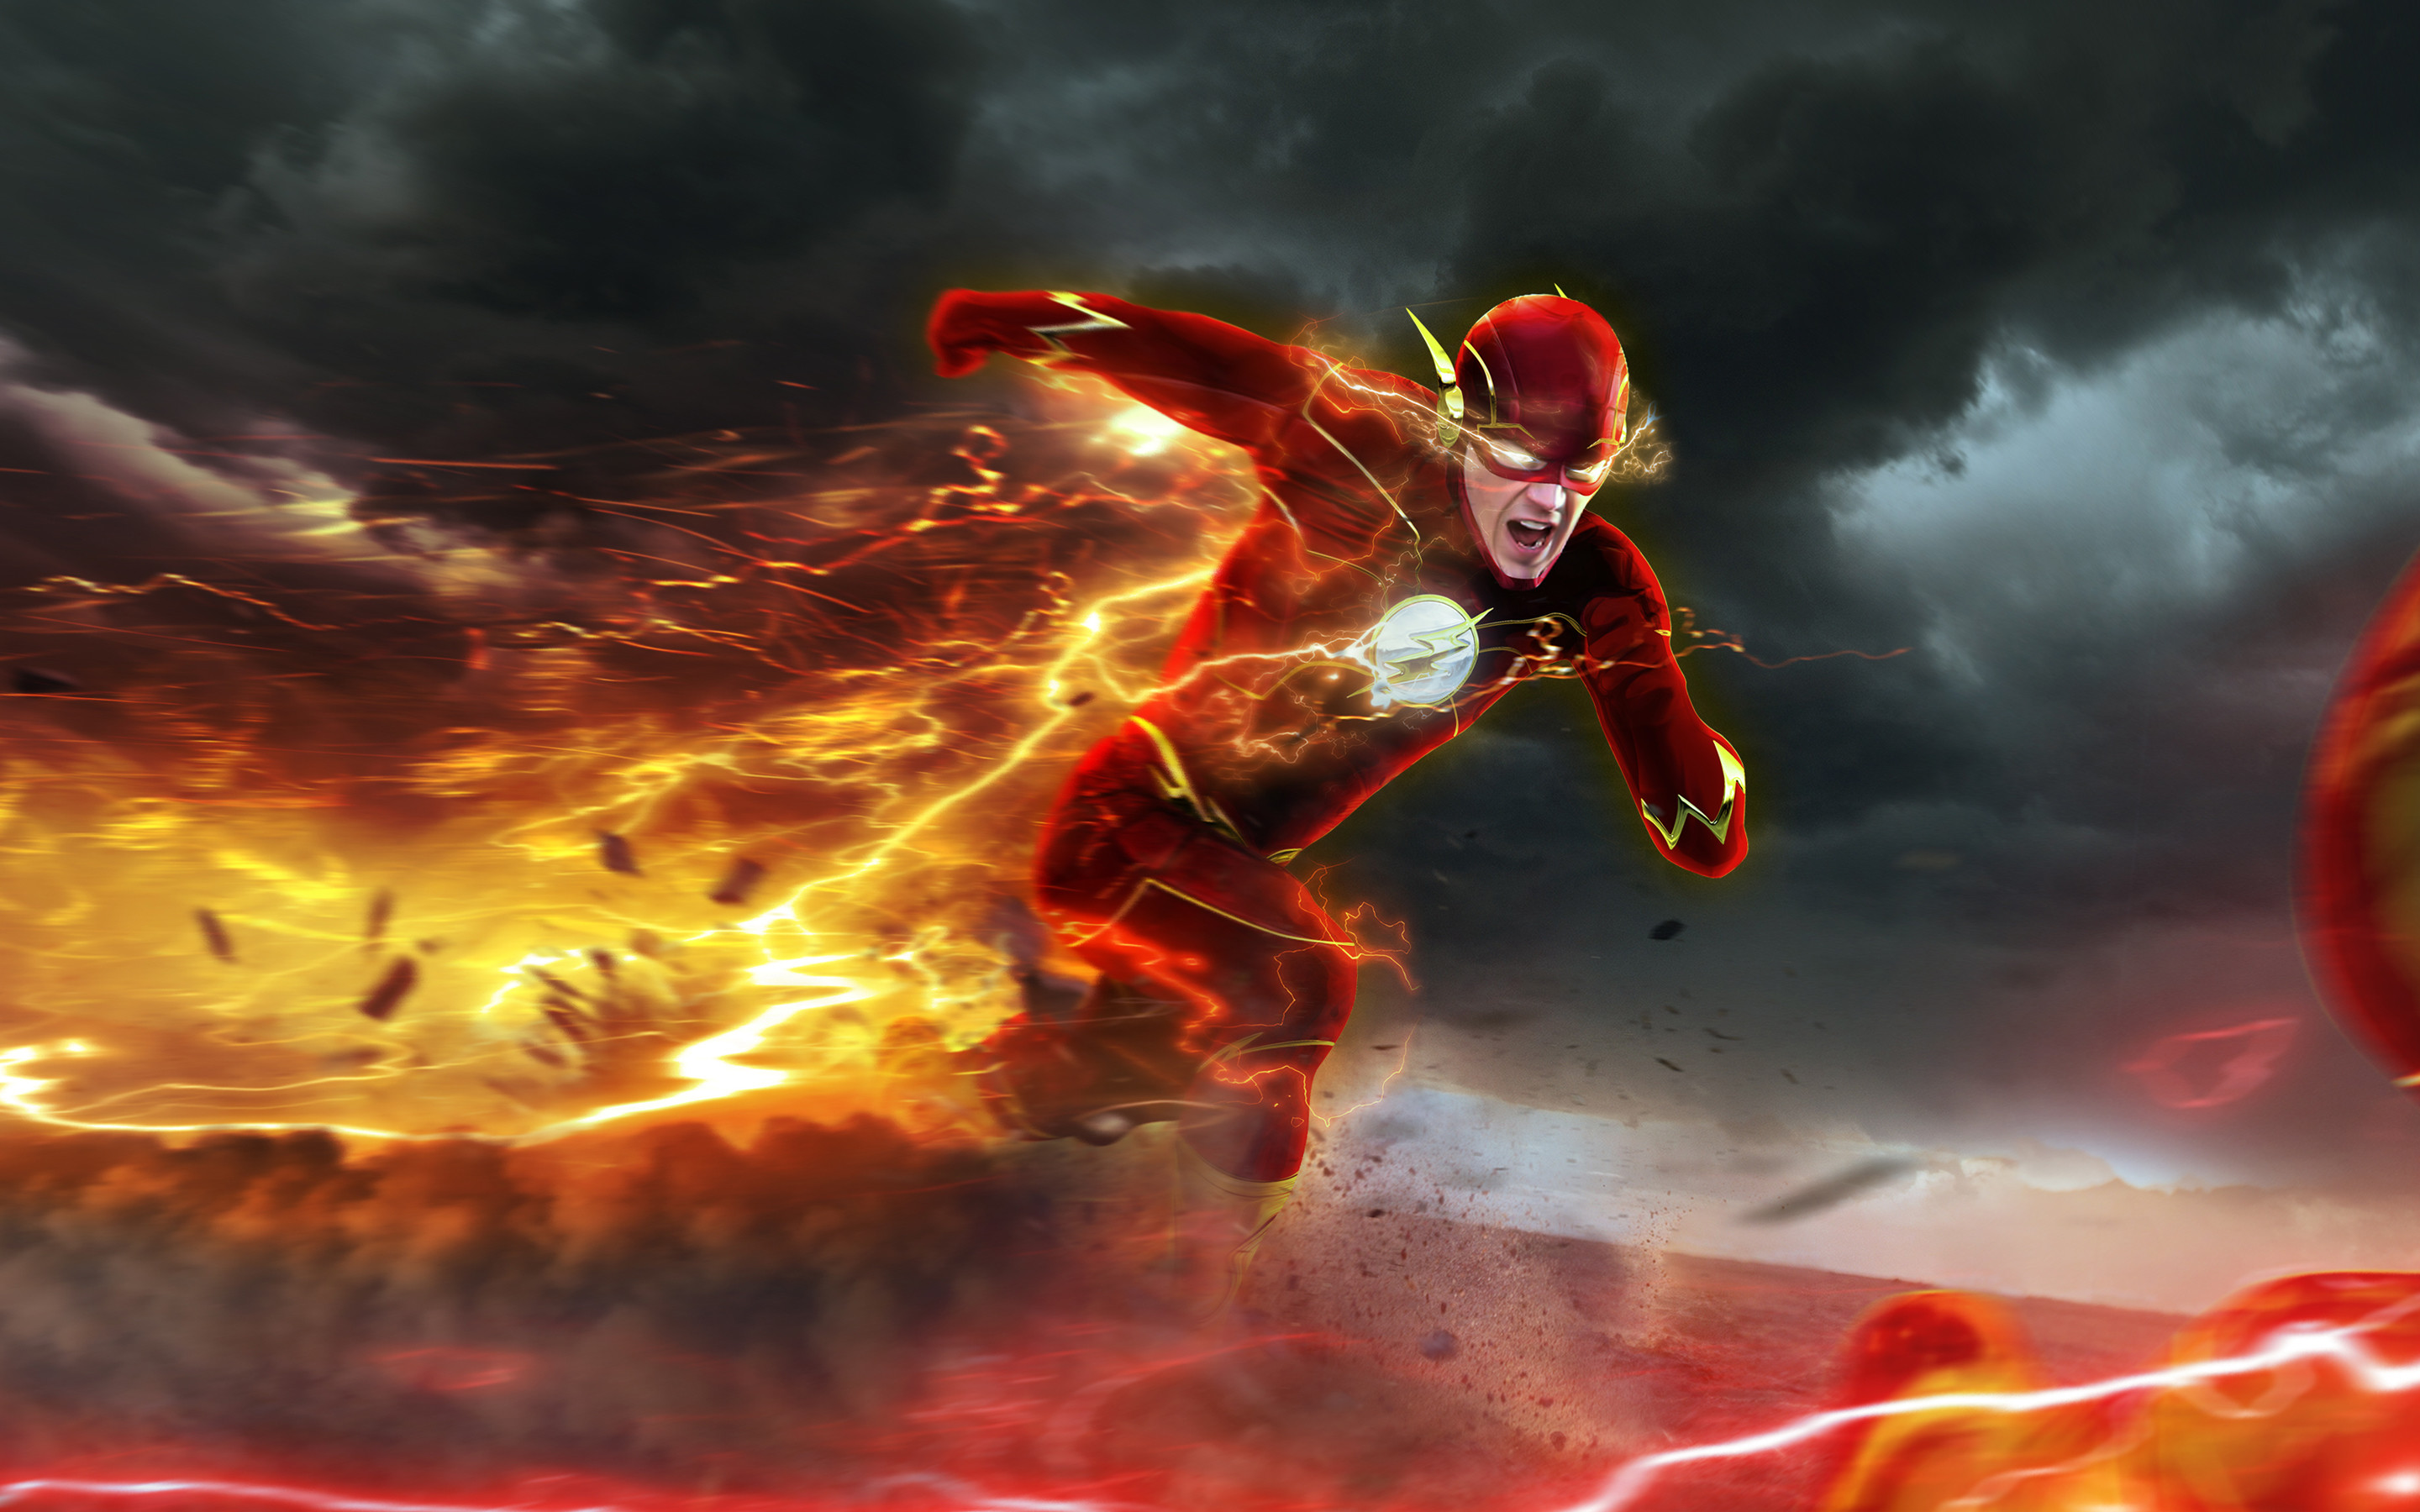 Res: 2880x1800, The Flash HD Images 5 #TheFlashHDImages #TheFlash #tvseries #wallpapers